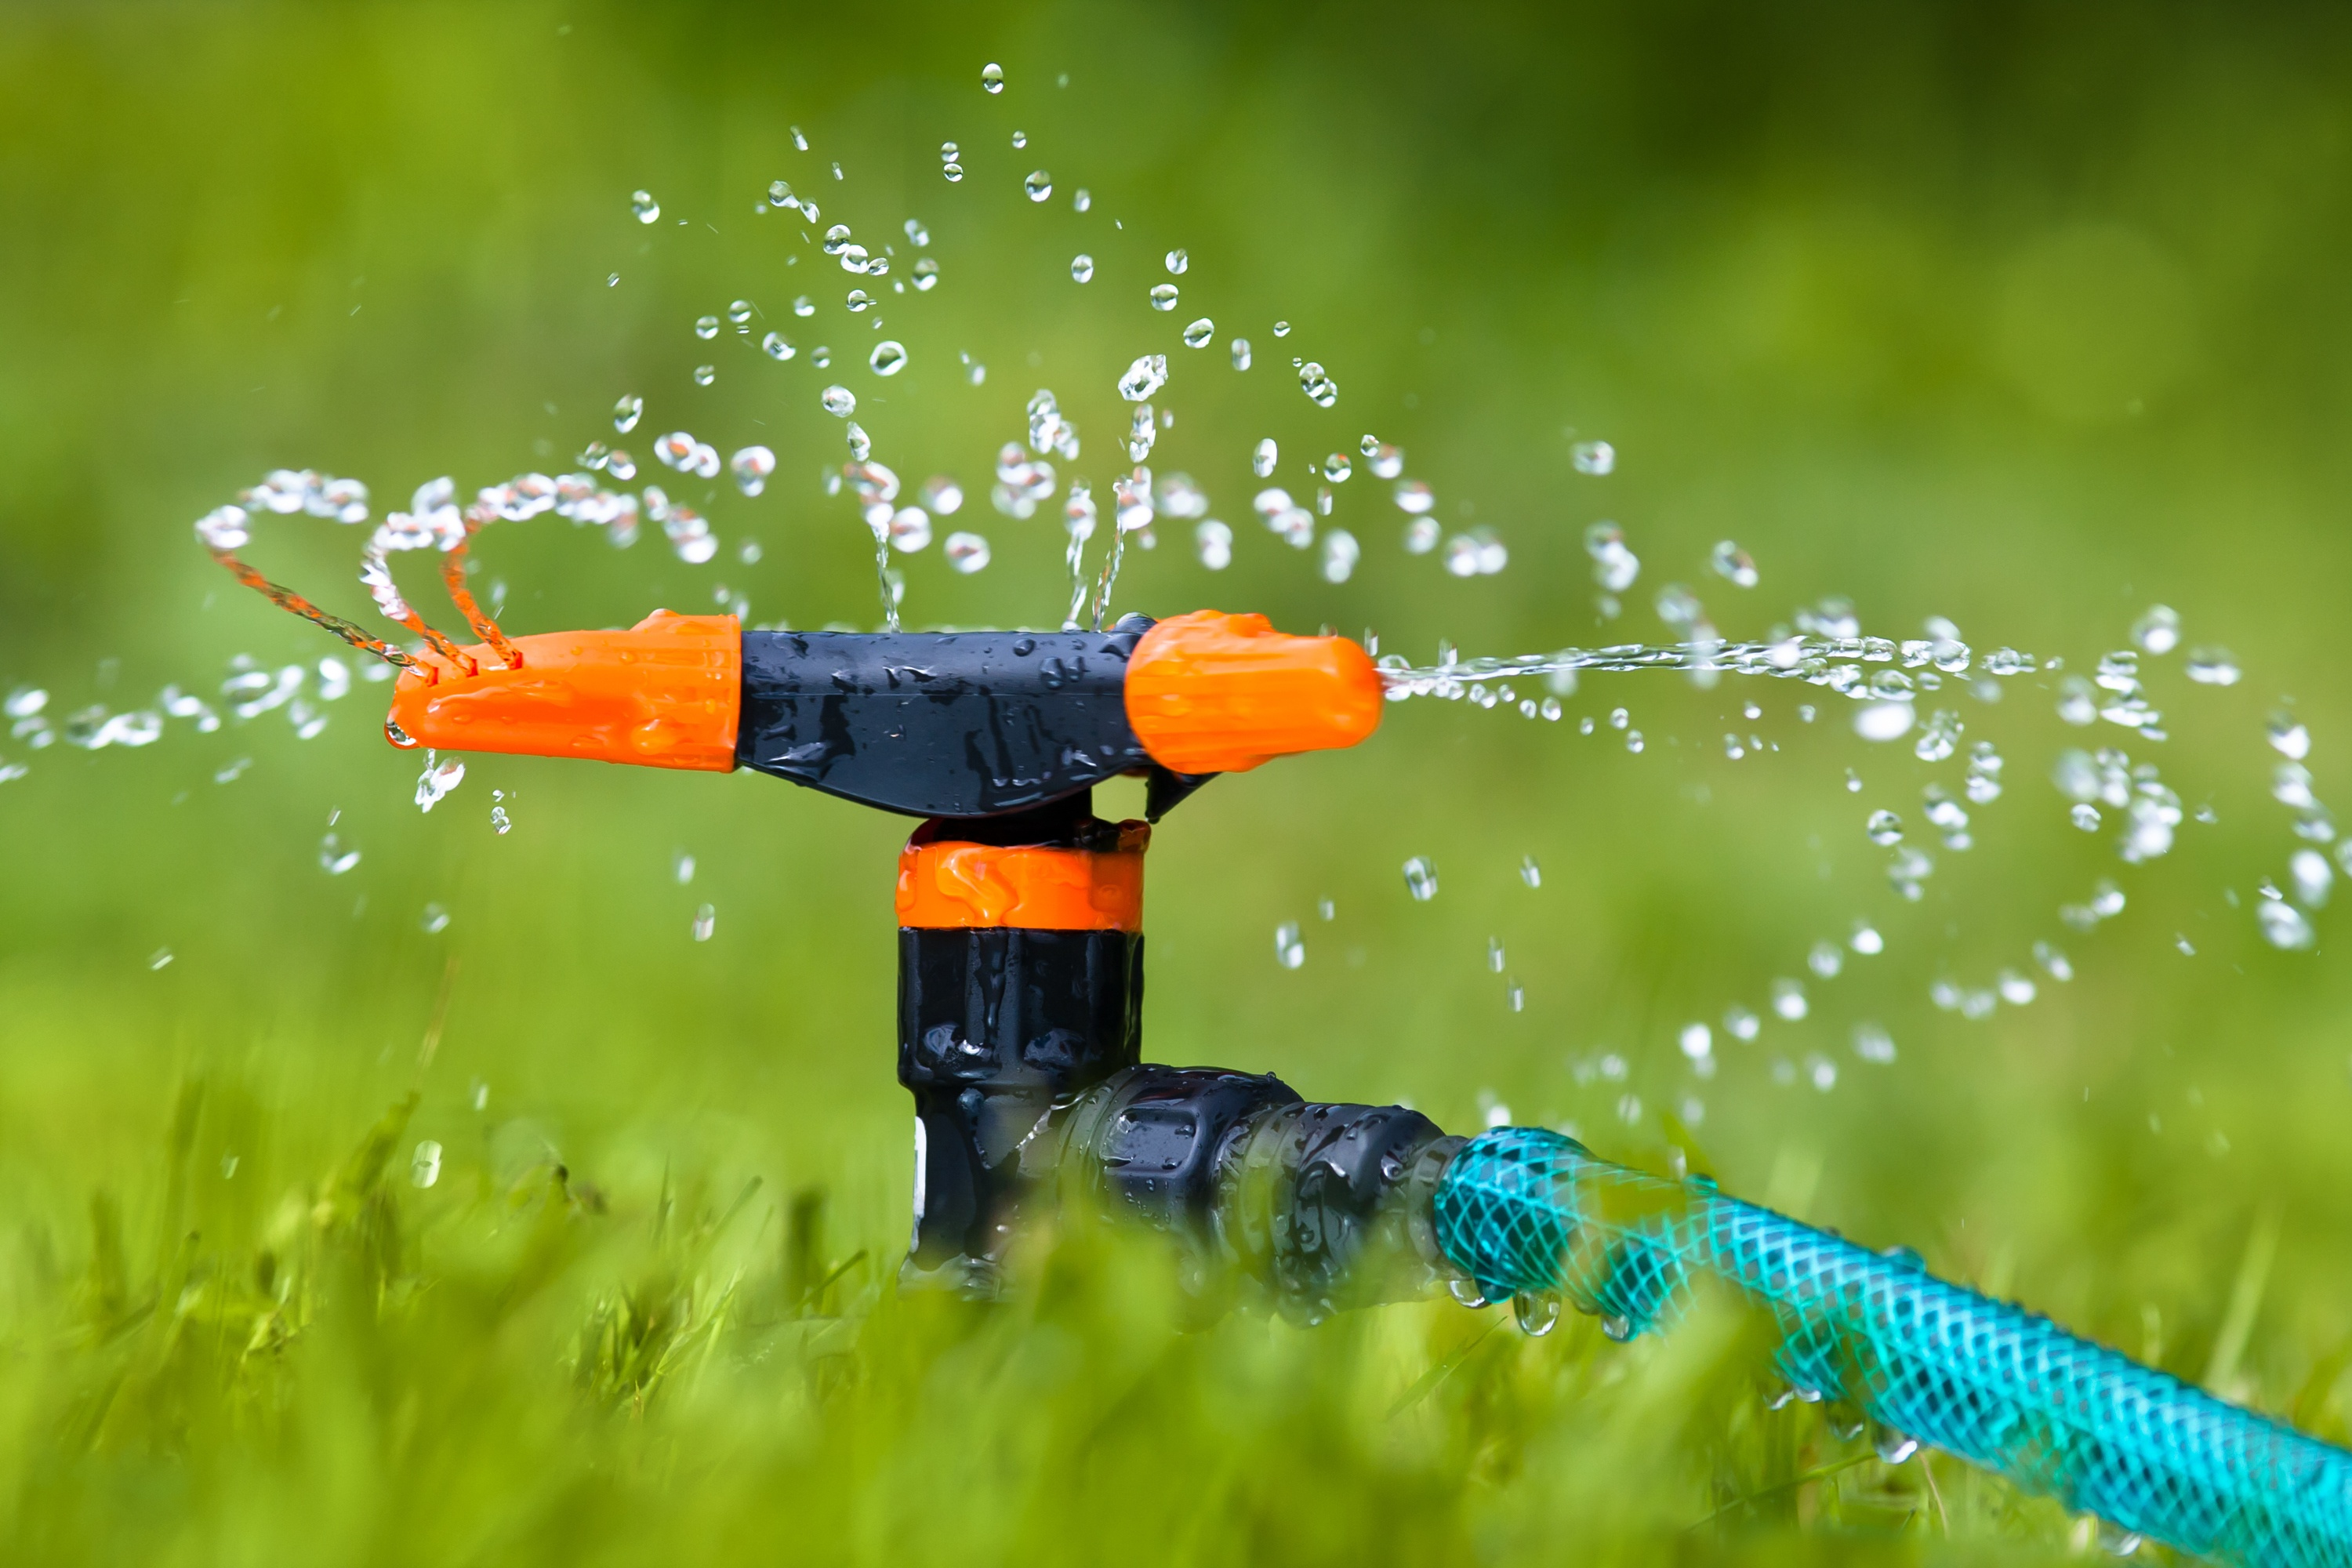 proper-lawn-watering-during-extreme-heat.jpg